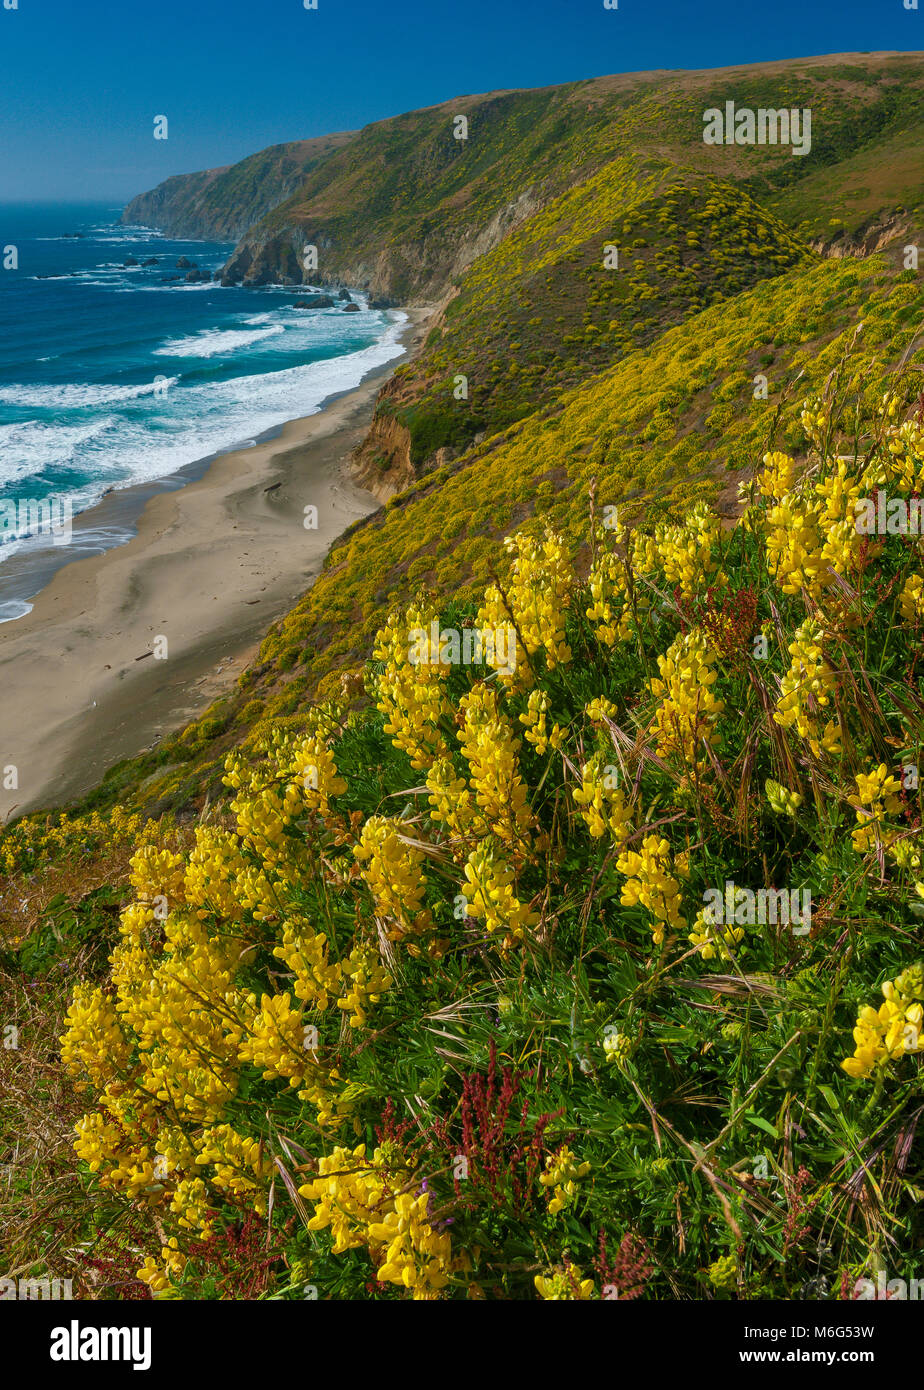 Yellow Tree Lupin, Tomales Point, Point Reyes National Seashore, Marin County, California - Stock Image